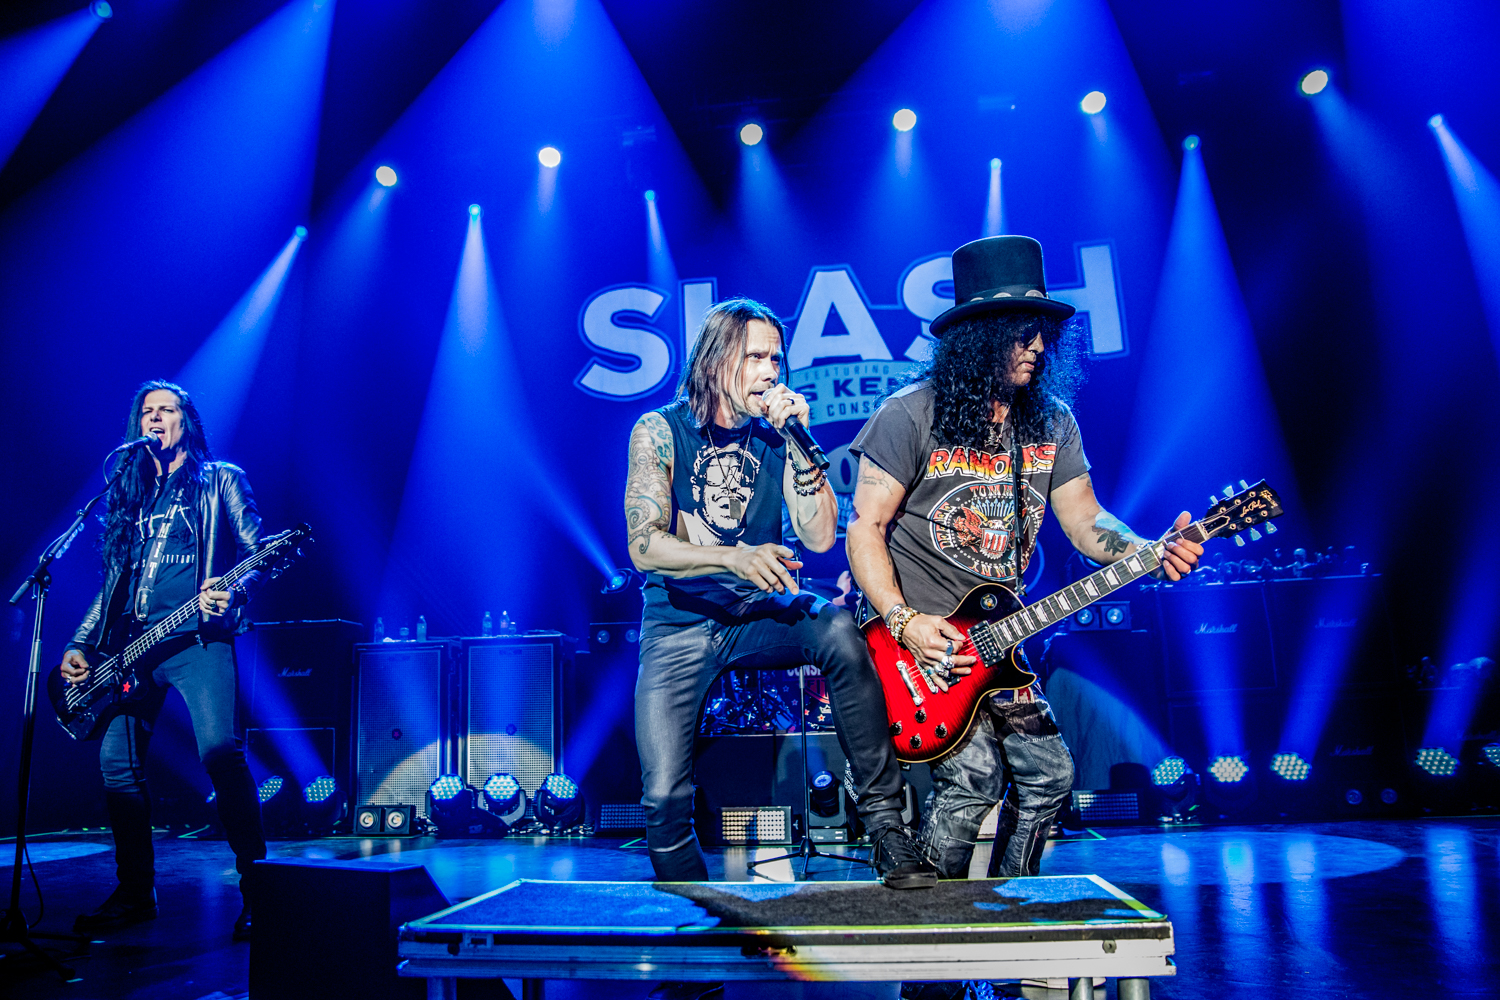 20190223_Slash ft. Myles Kennedy and The Conspirators_Koninklijk Circus-10